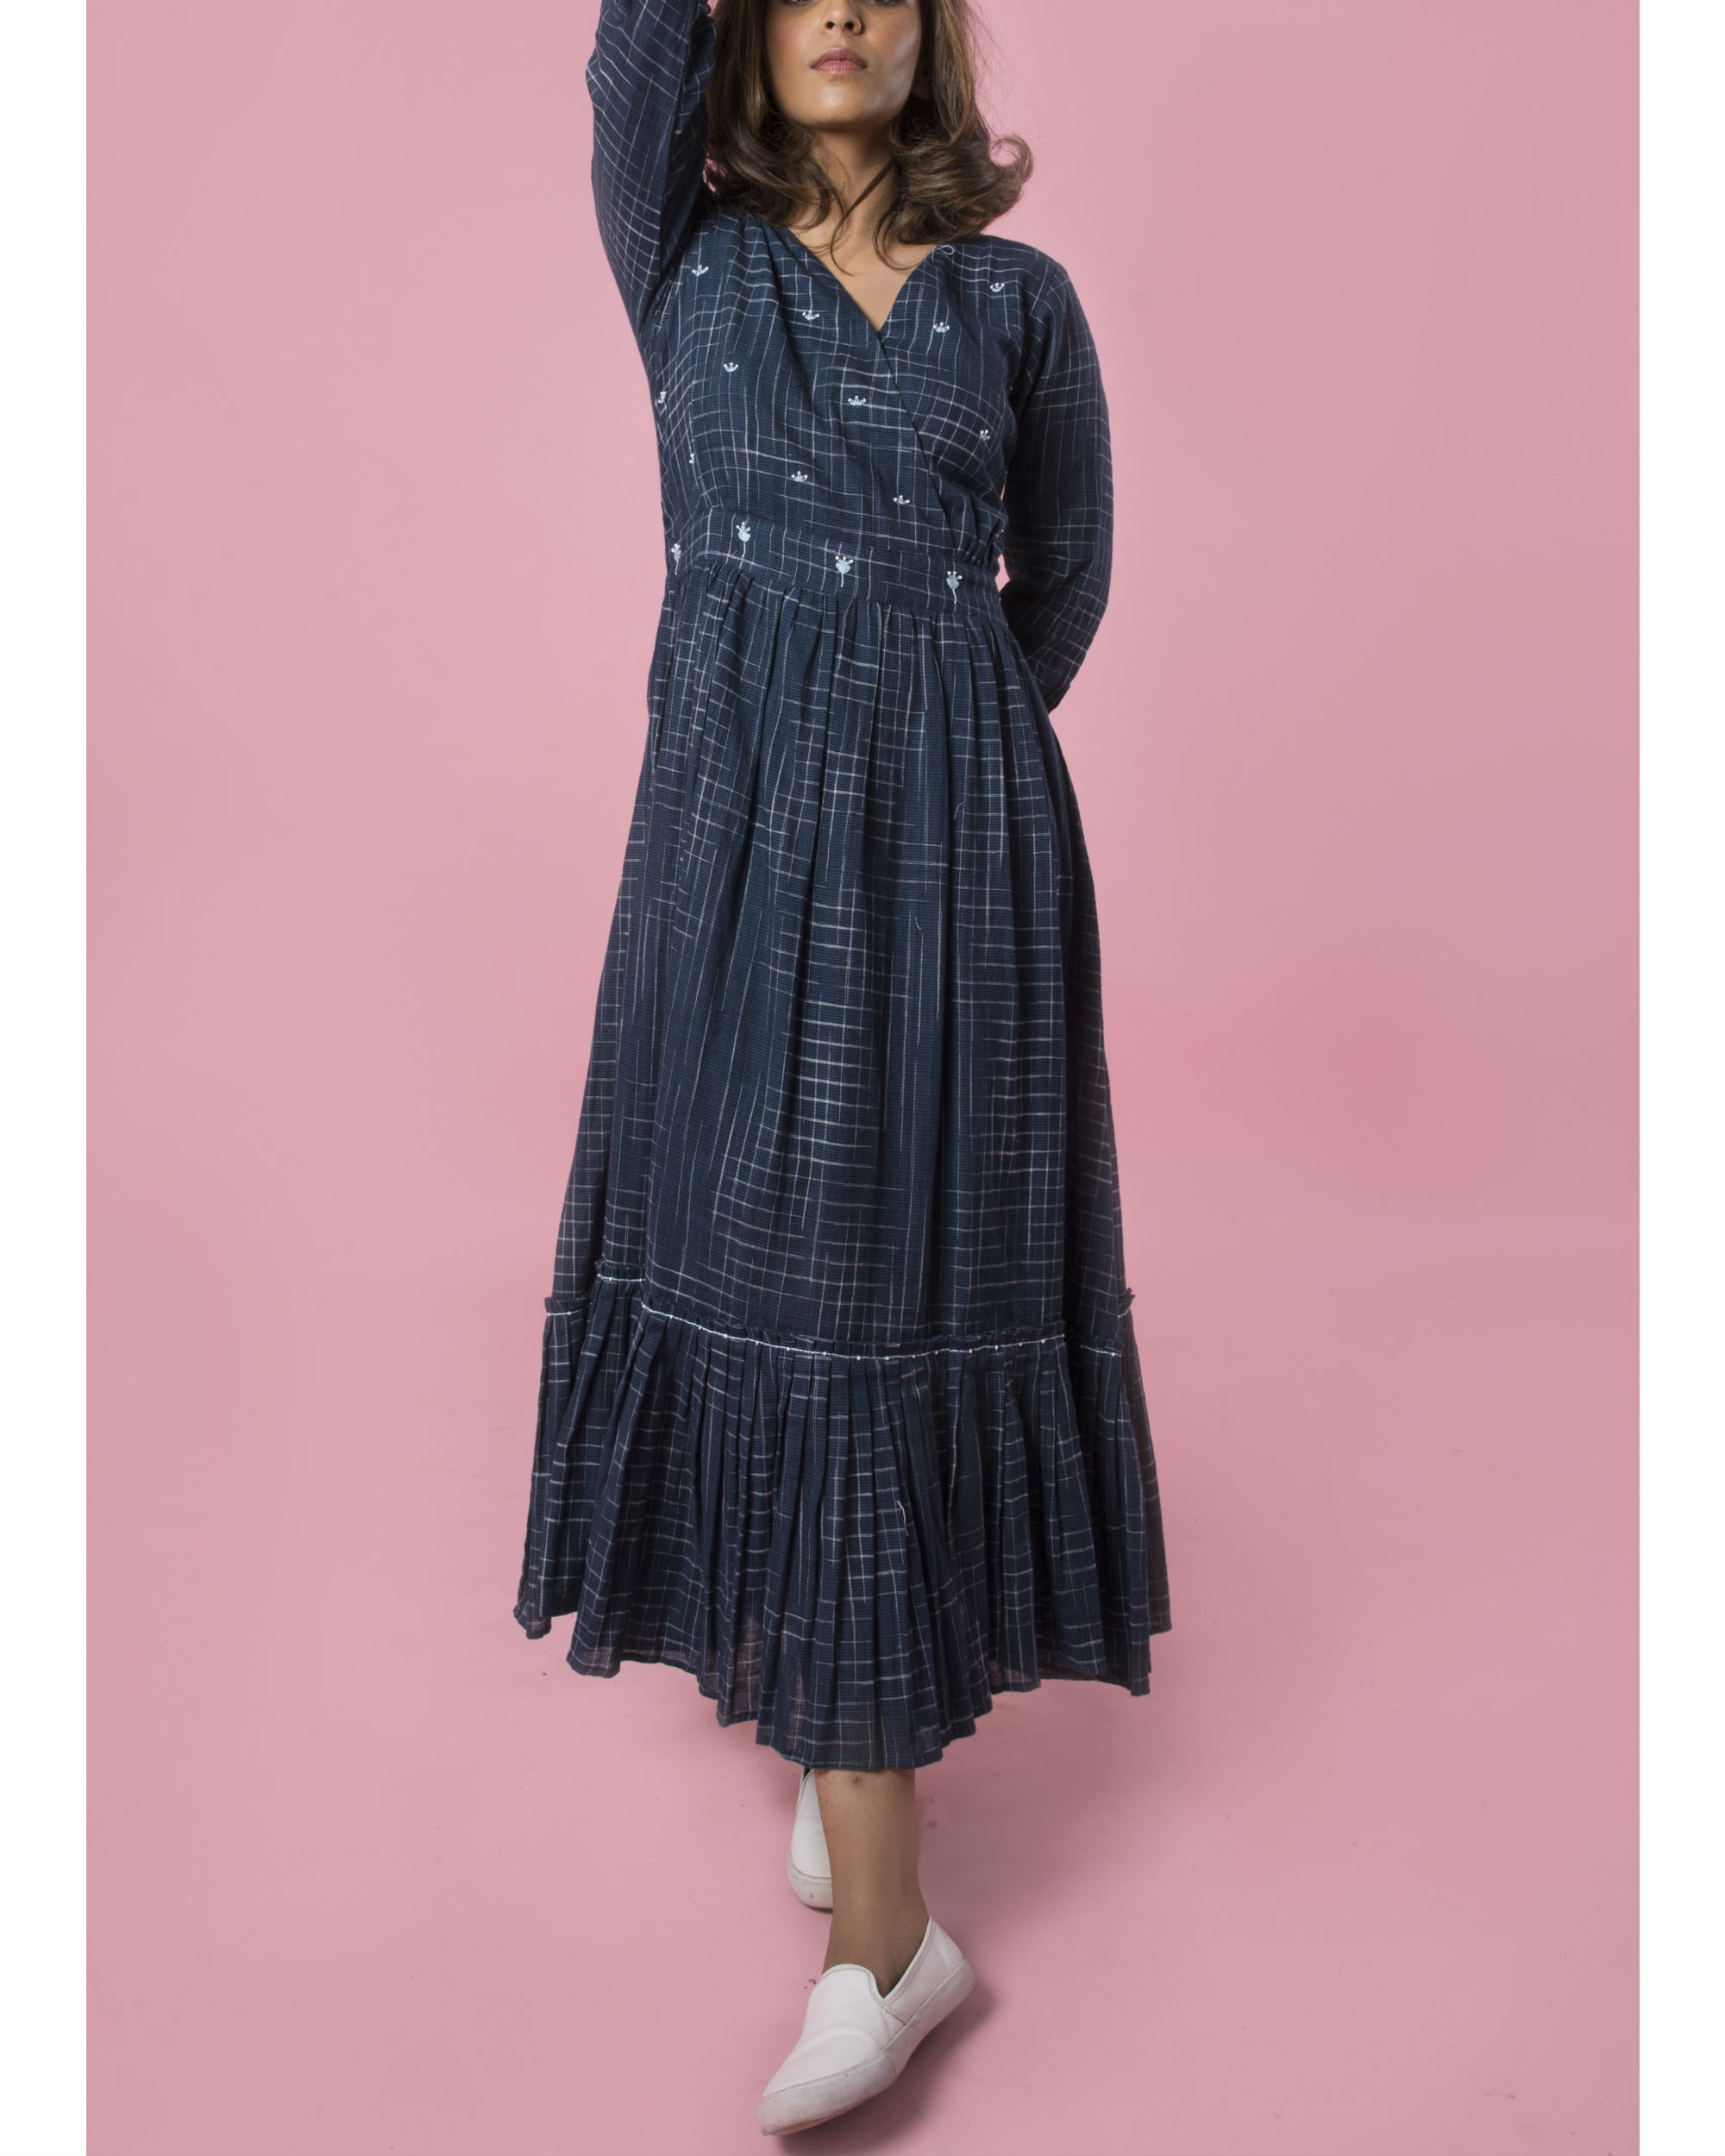 Indigo tiered maxi dress